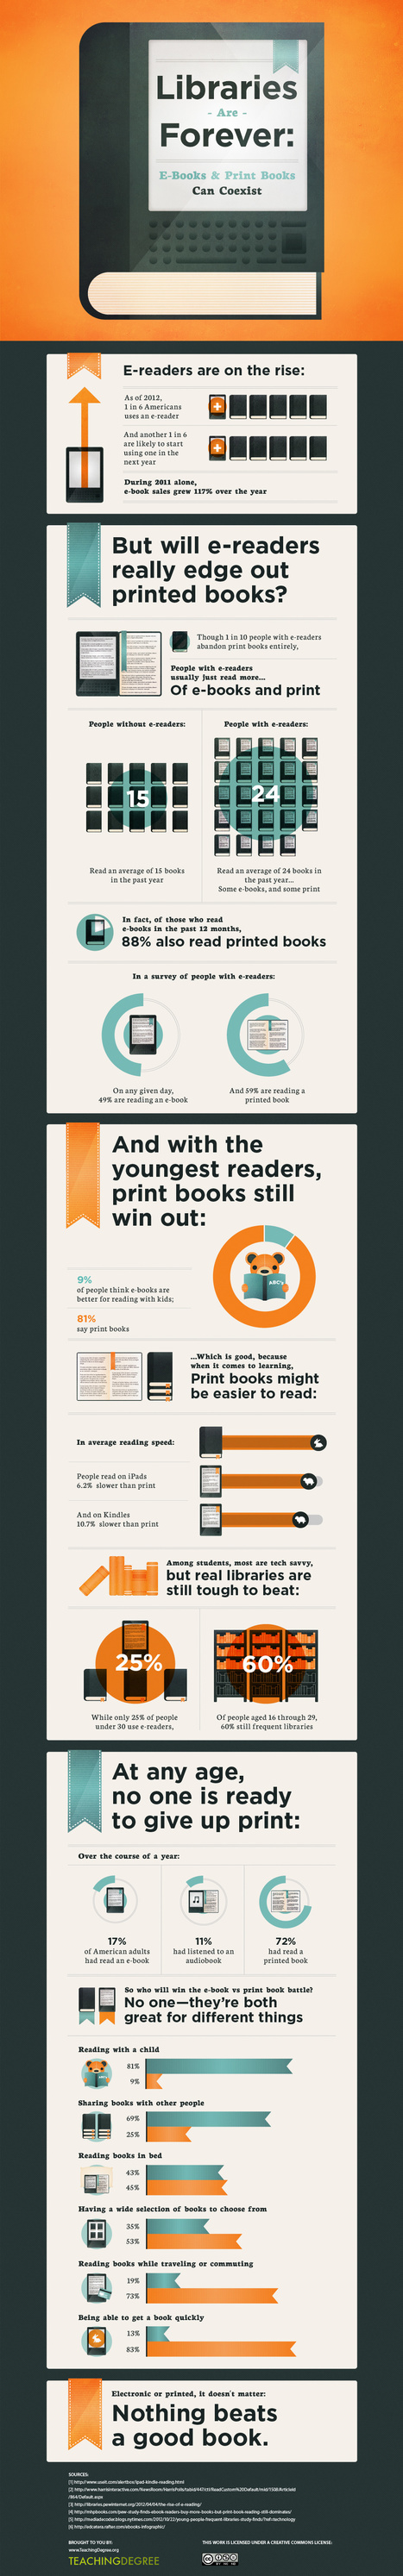 Can E-Books and Libraries Coexist? – Infographic | Professional development of Librarians | Scoop.it